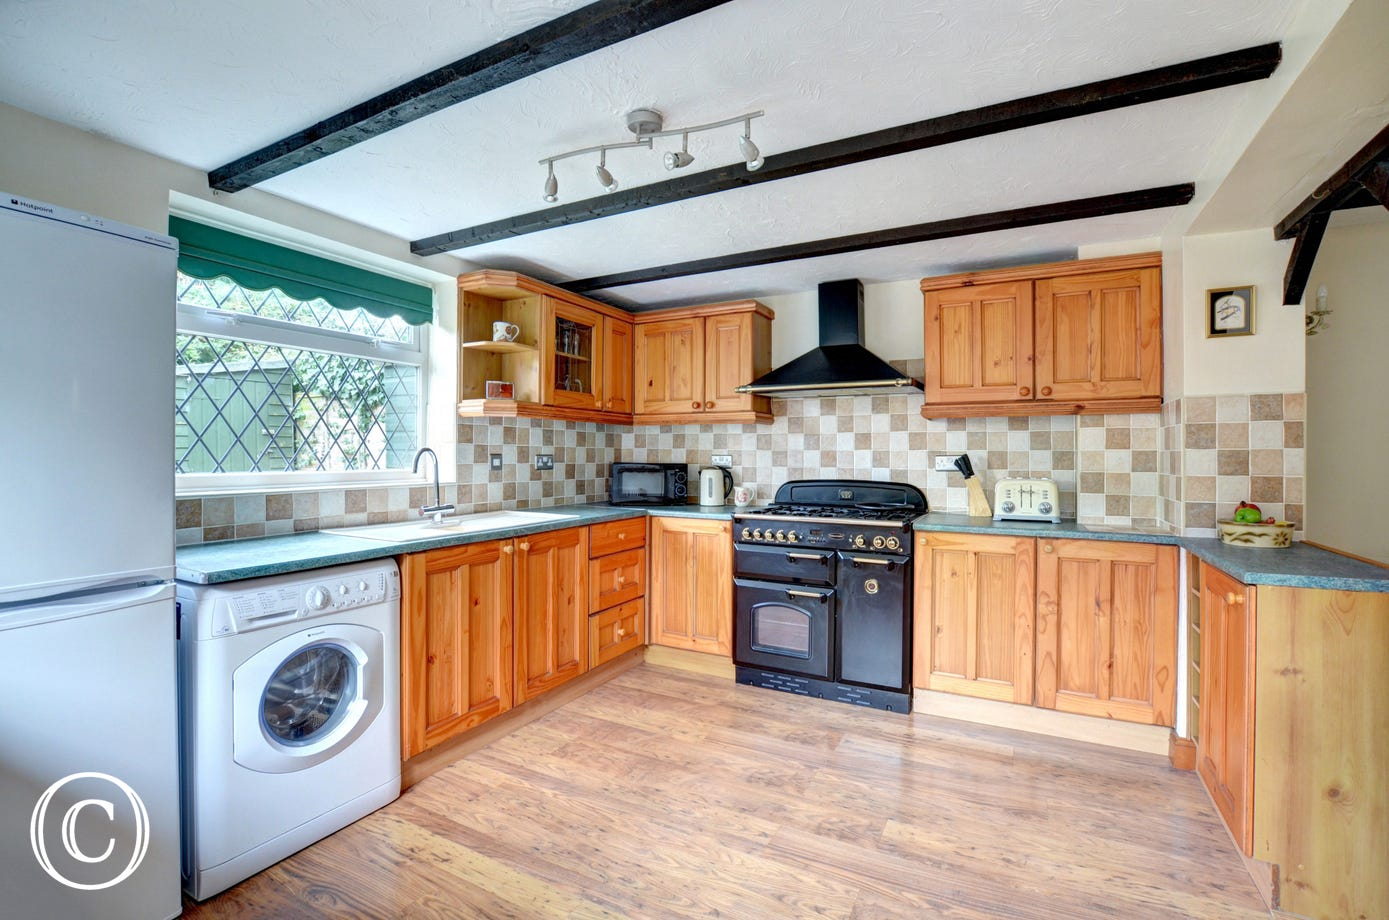 Traditional farmhouse kitchen style kitchen with plenty of storage and worktops